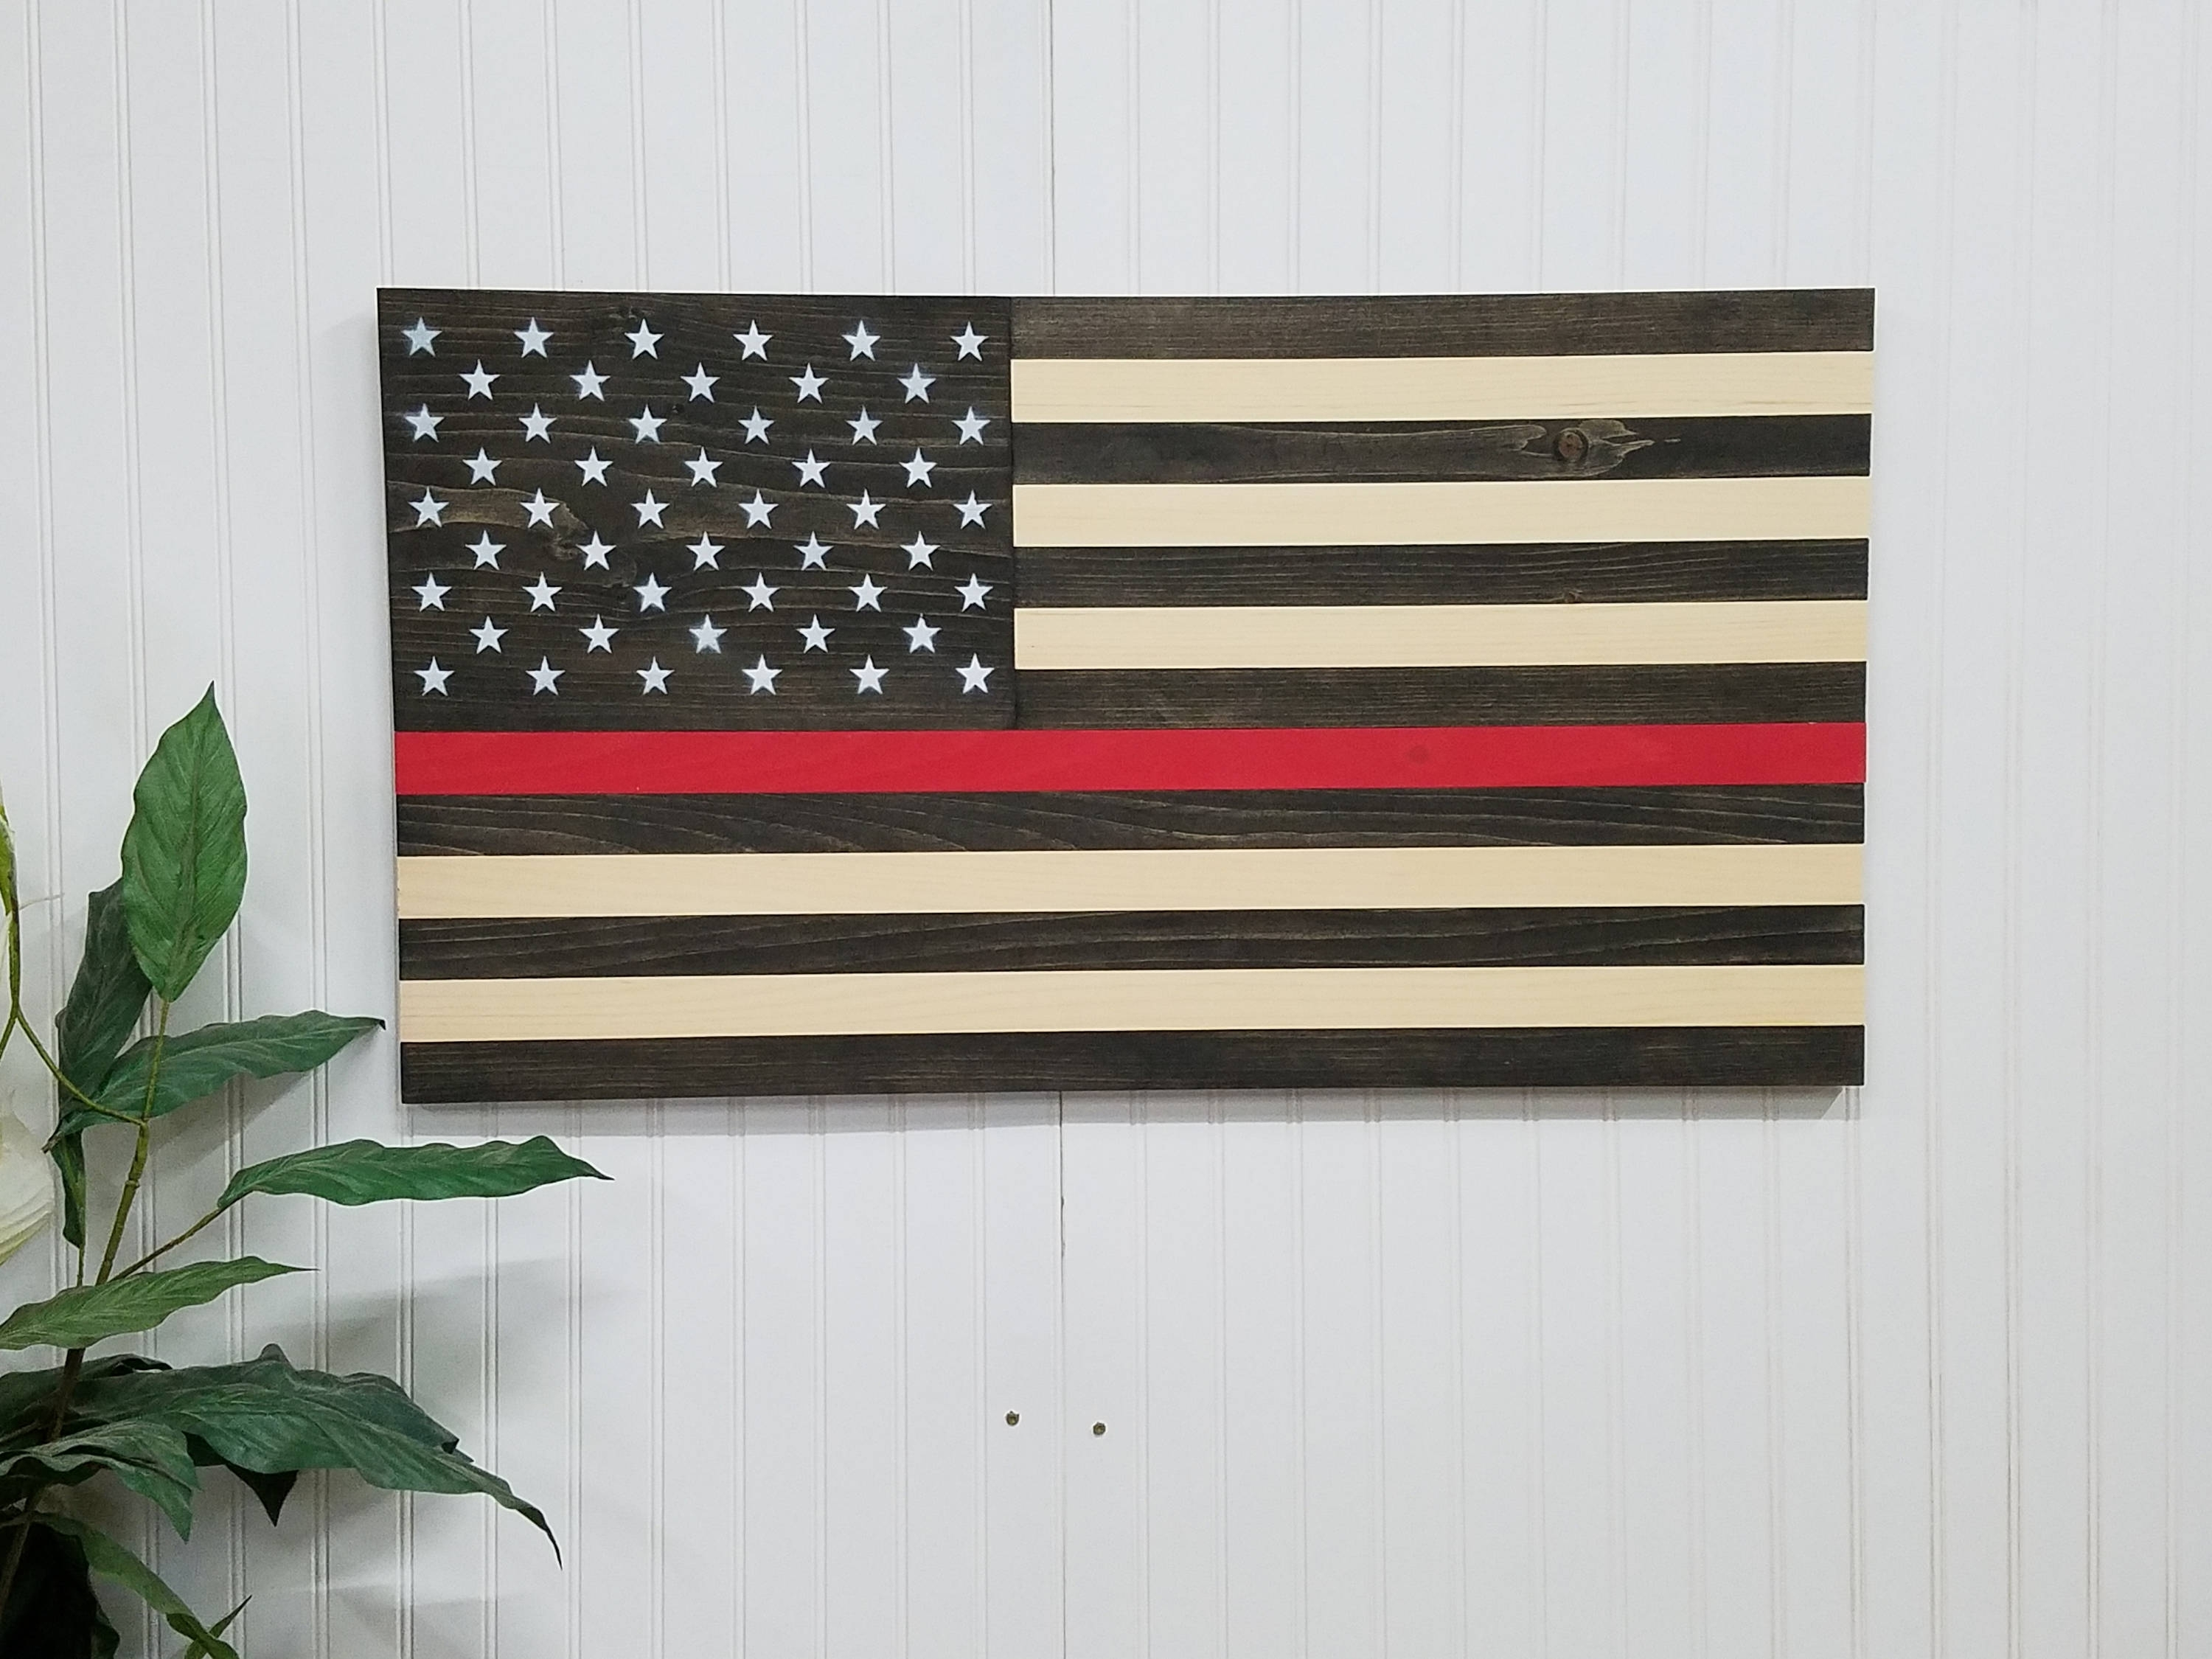 American Flag Thin Red Line Theme Wooden Wall Mount Art Decor Usa Pertaining To Latest Wooden American Flag Wall Art (View 15 of 20)